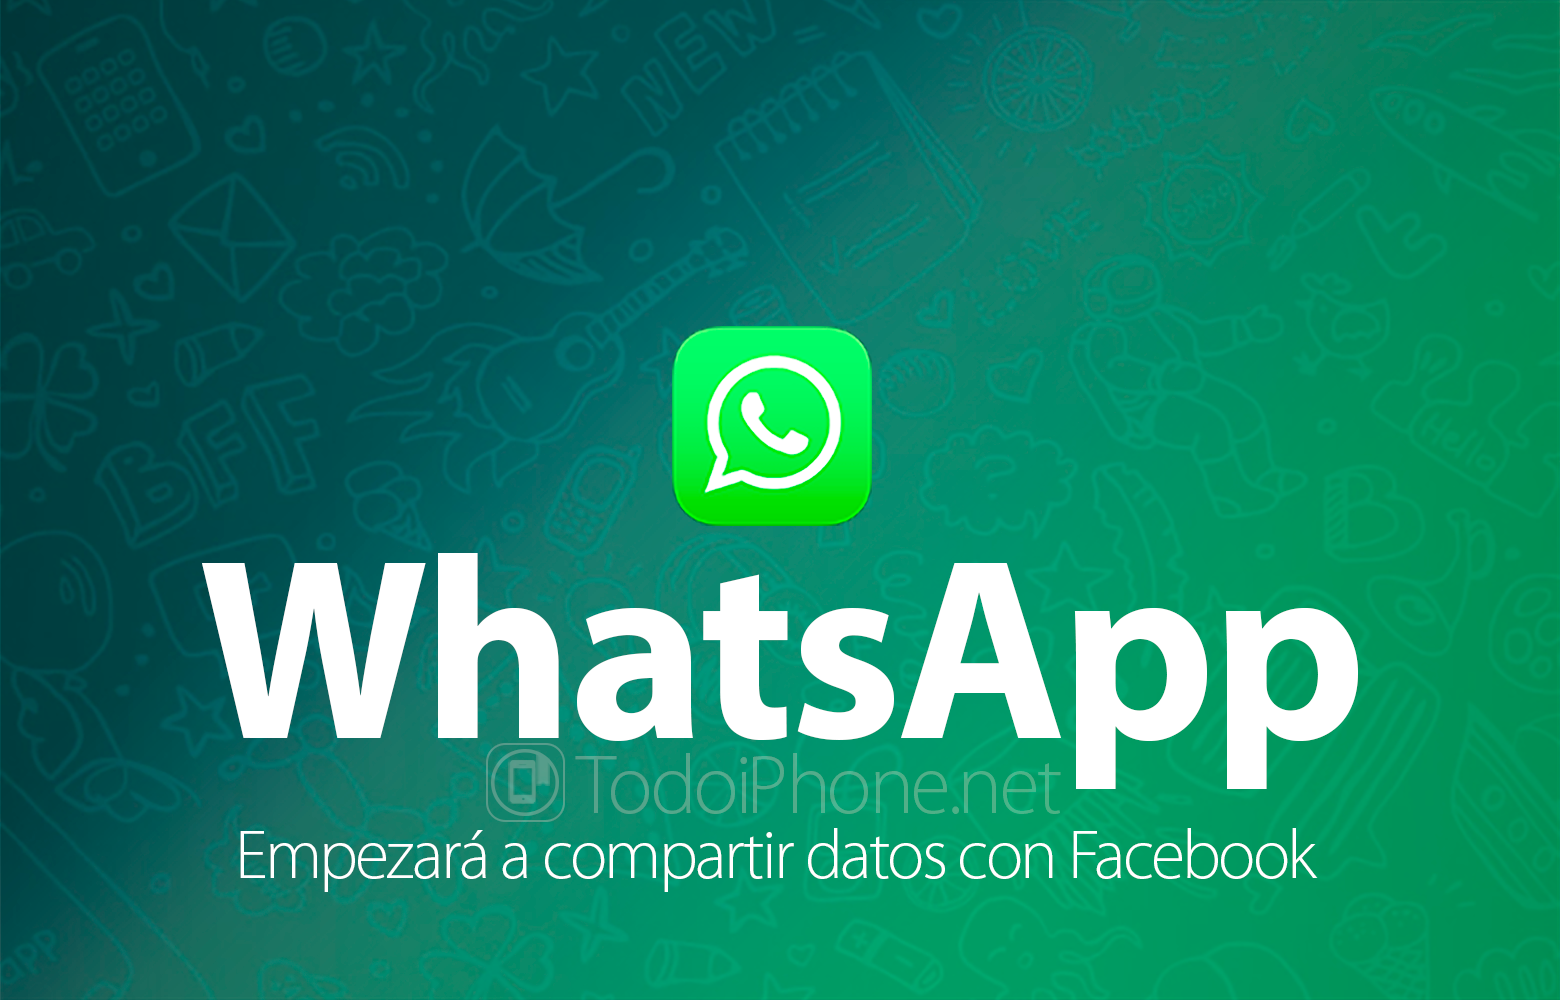 whatsapp-empezara-compartir-datos-facebook